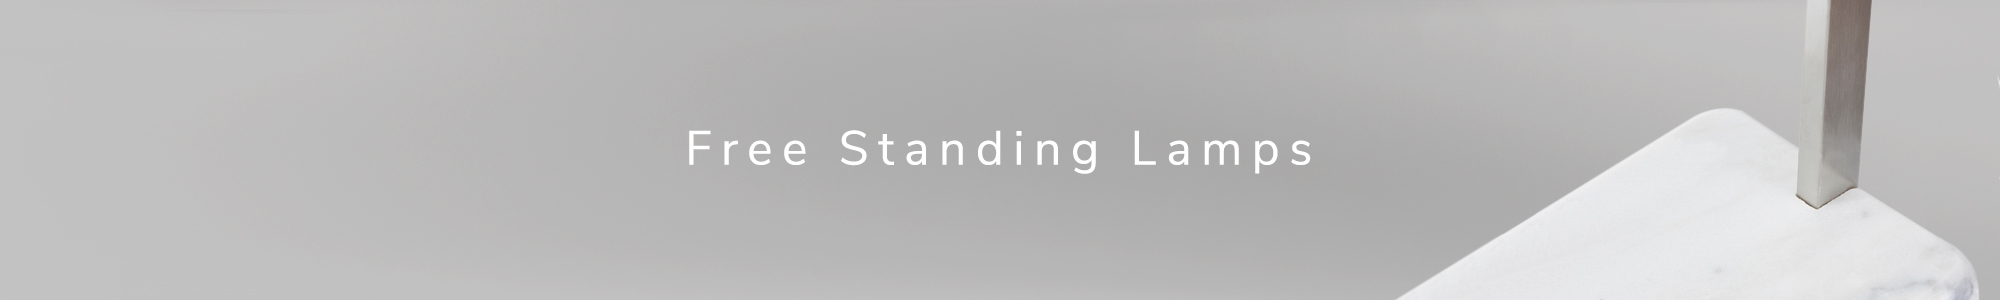 Free Standing Lamps